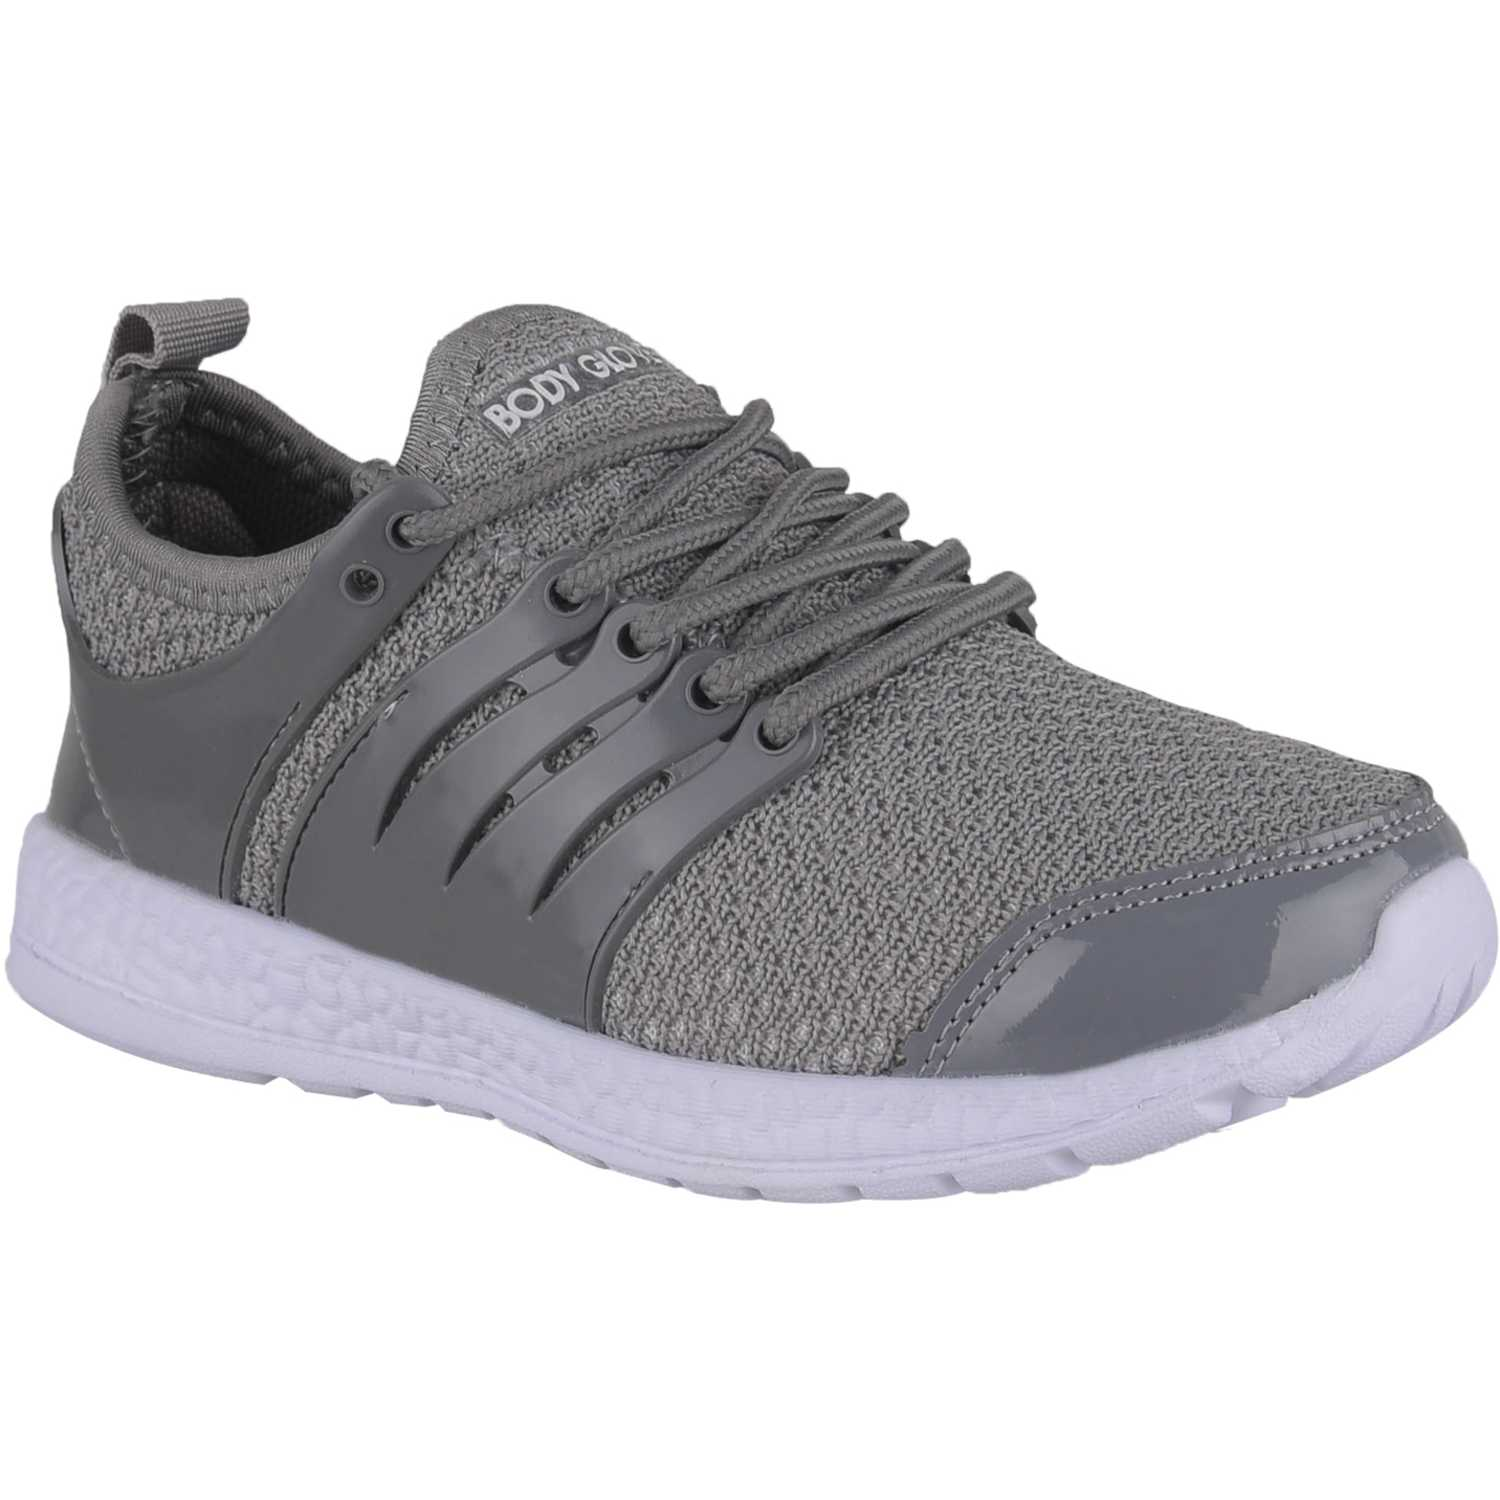 Body Glove Z 5004g Gris Zapatillas